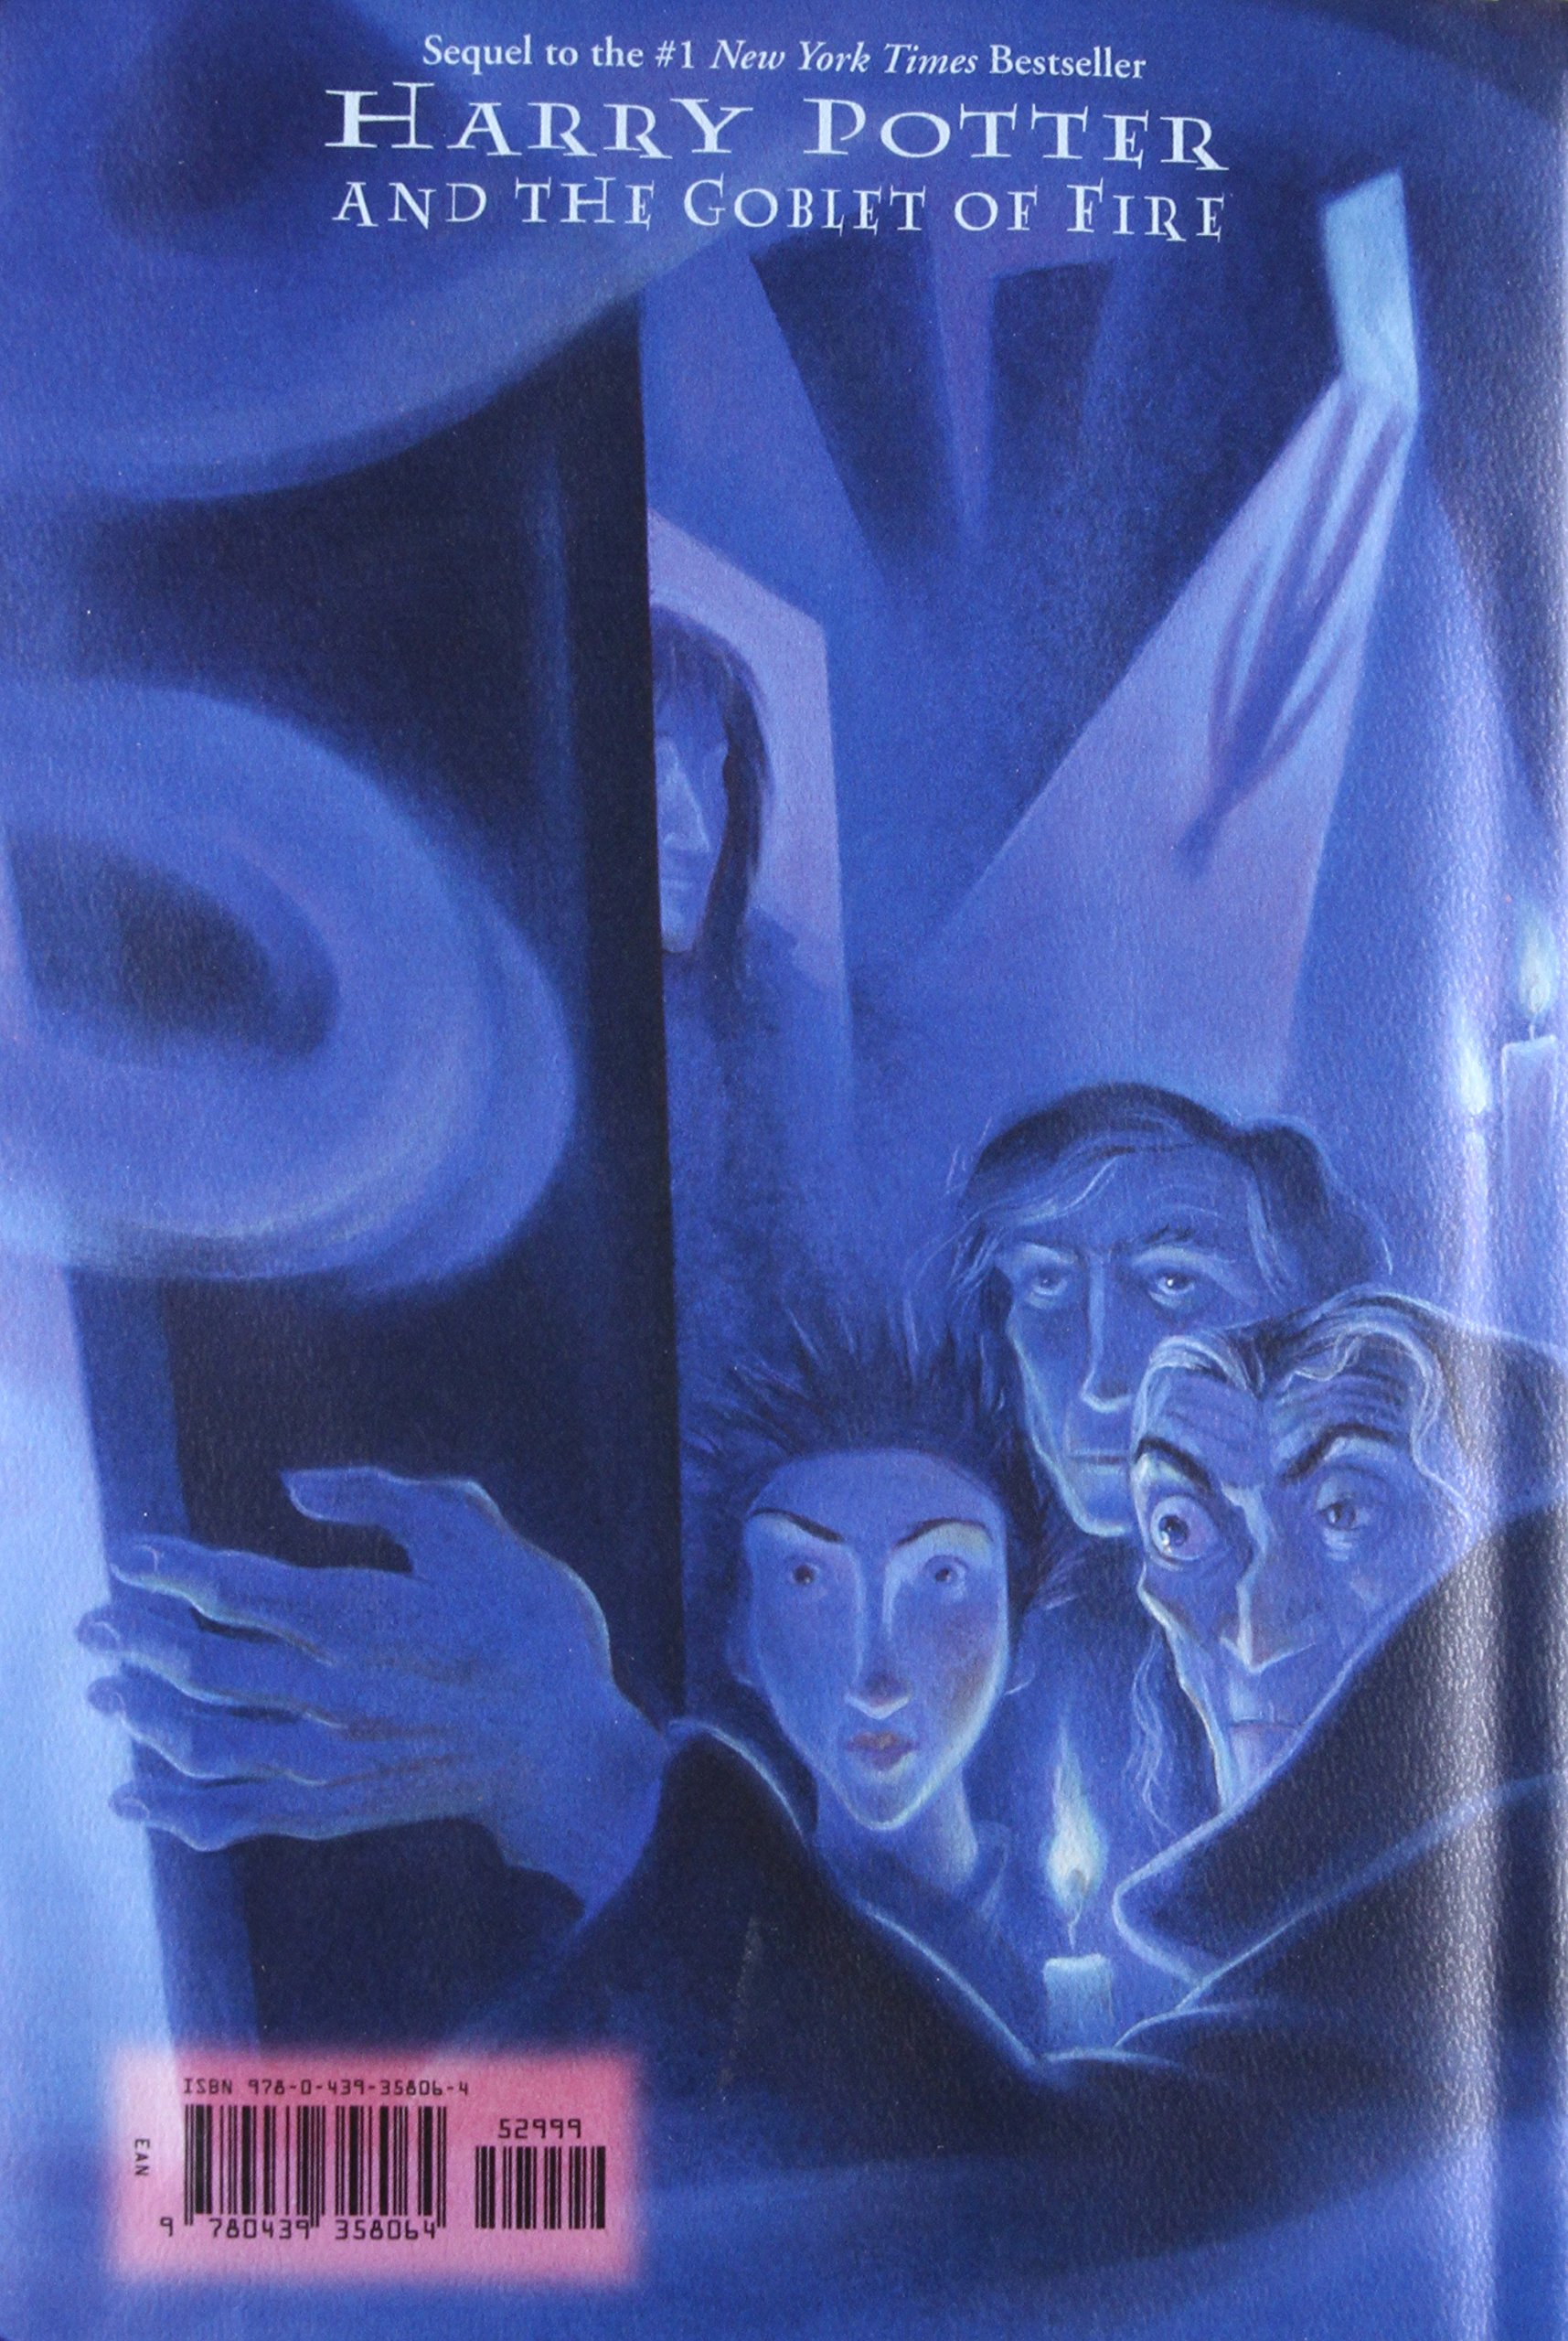 Harry Potter and the Order of the Phoenix (Book 5) by Arthur A. Levine Books (Image #2)